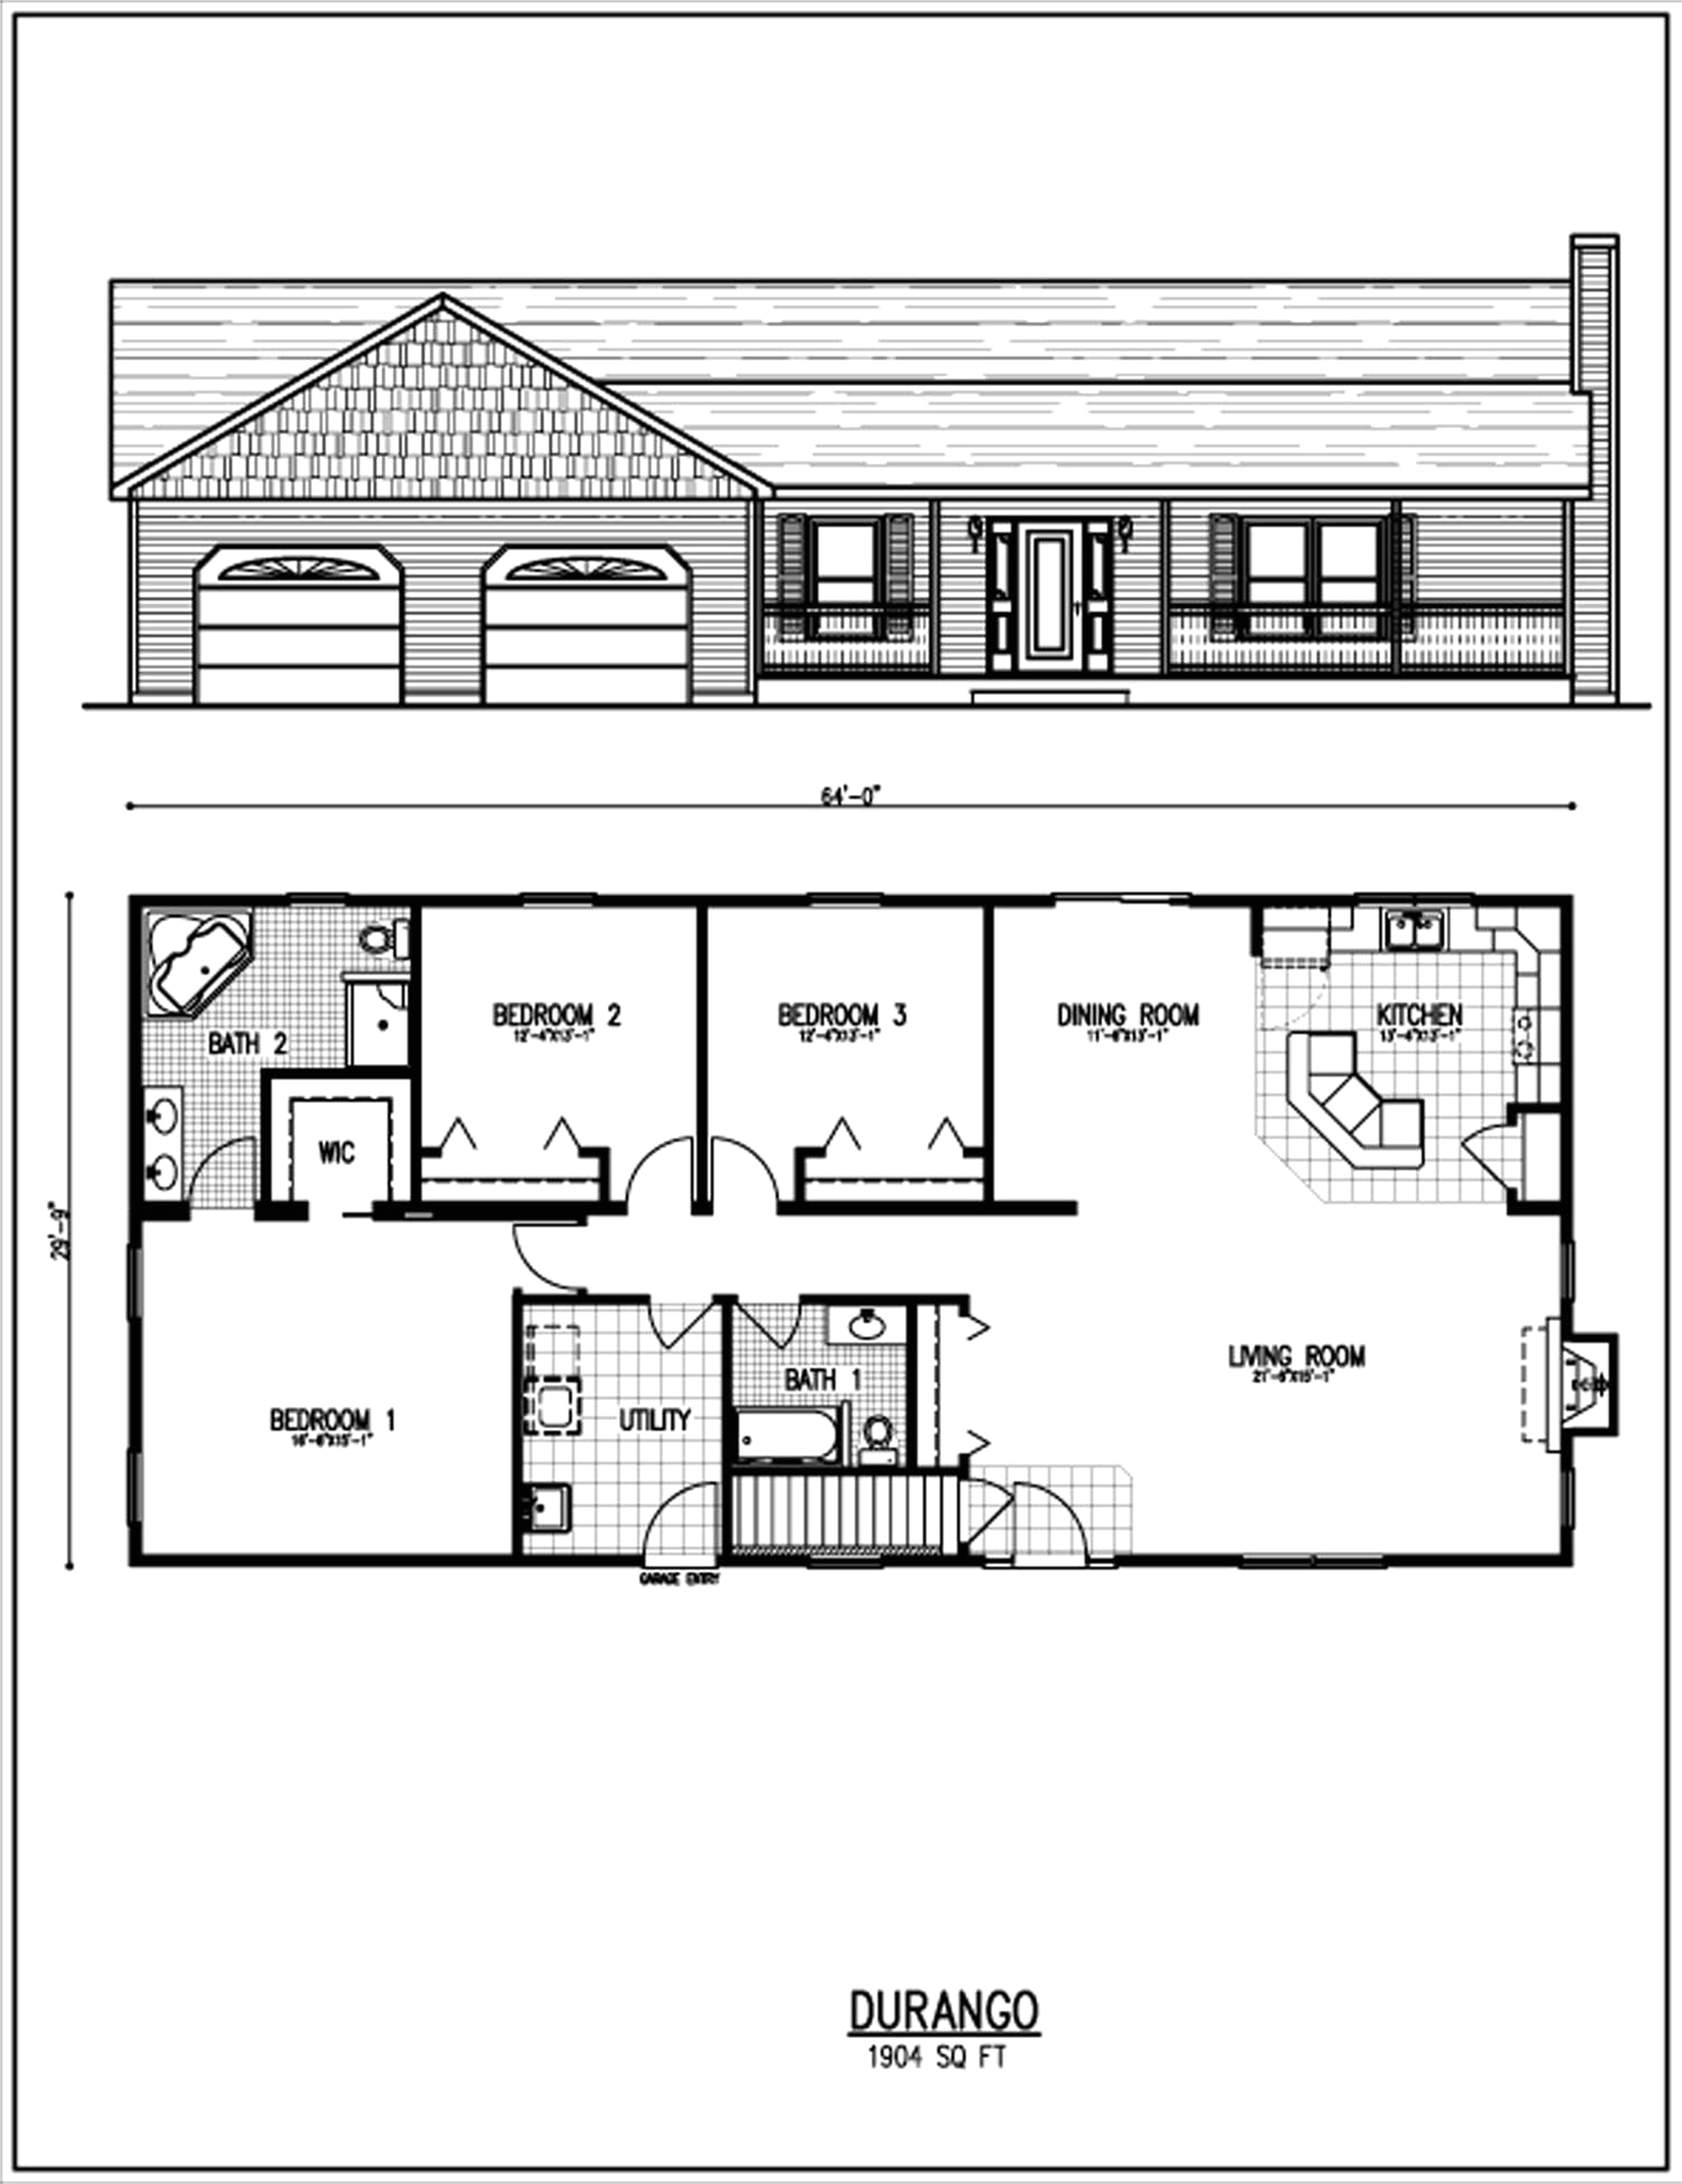 2500 sq ft house plans with walkout basement fresh luxury ranch house plans lovely manor heart 10 high end elegant home